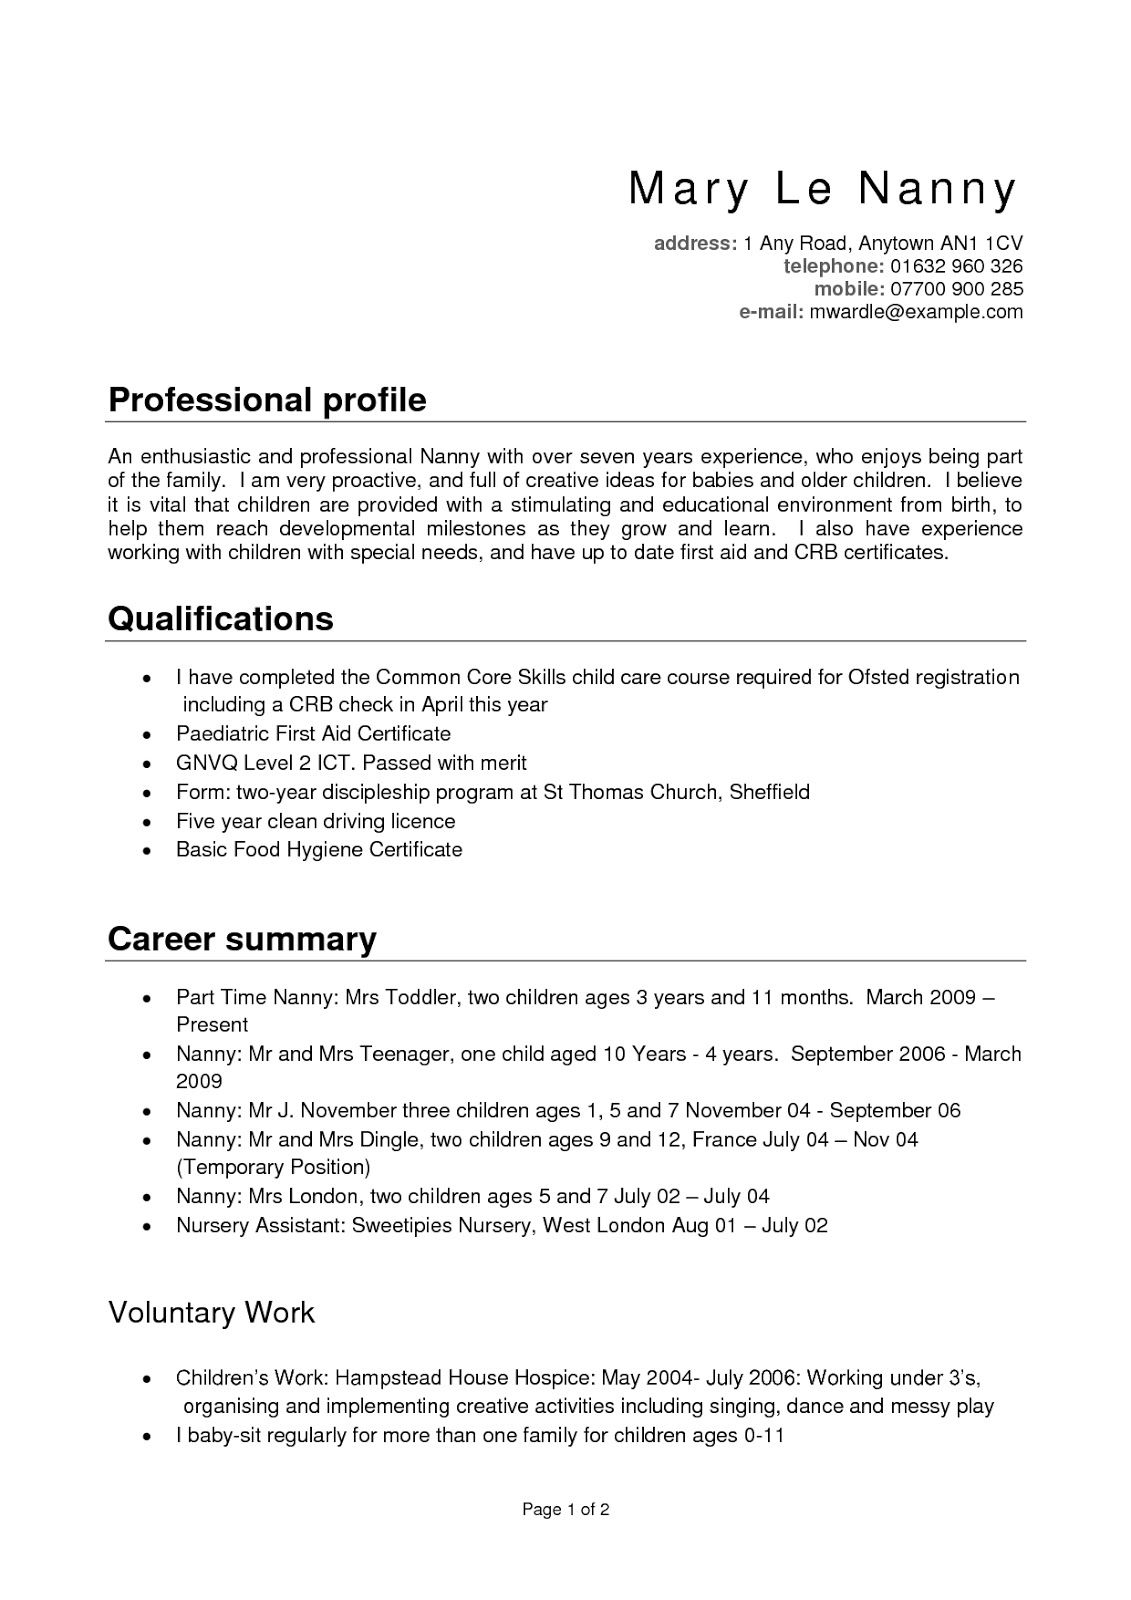 nanny resume templates free template re profile examples duties for public policy sample Resume Nanny Duties For Resume